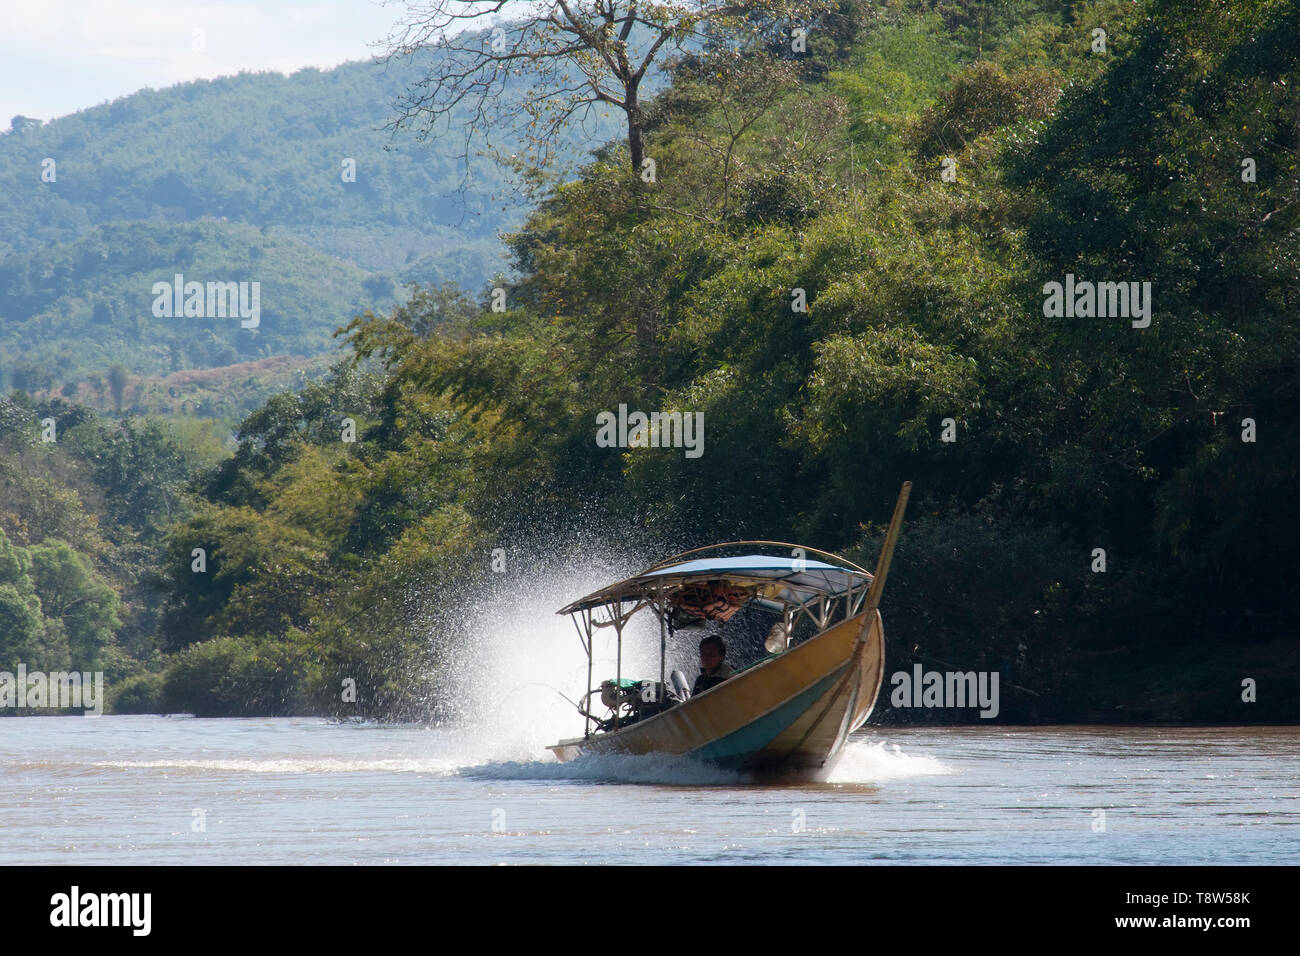 Kok River Thailand Jan 4 2019, long boat travelling up river - Stock Image